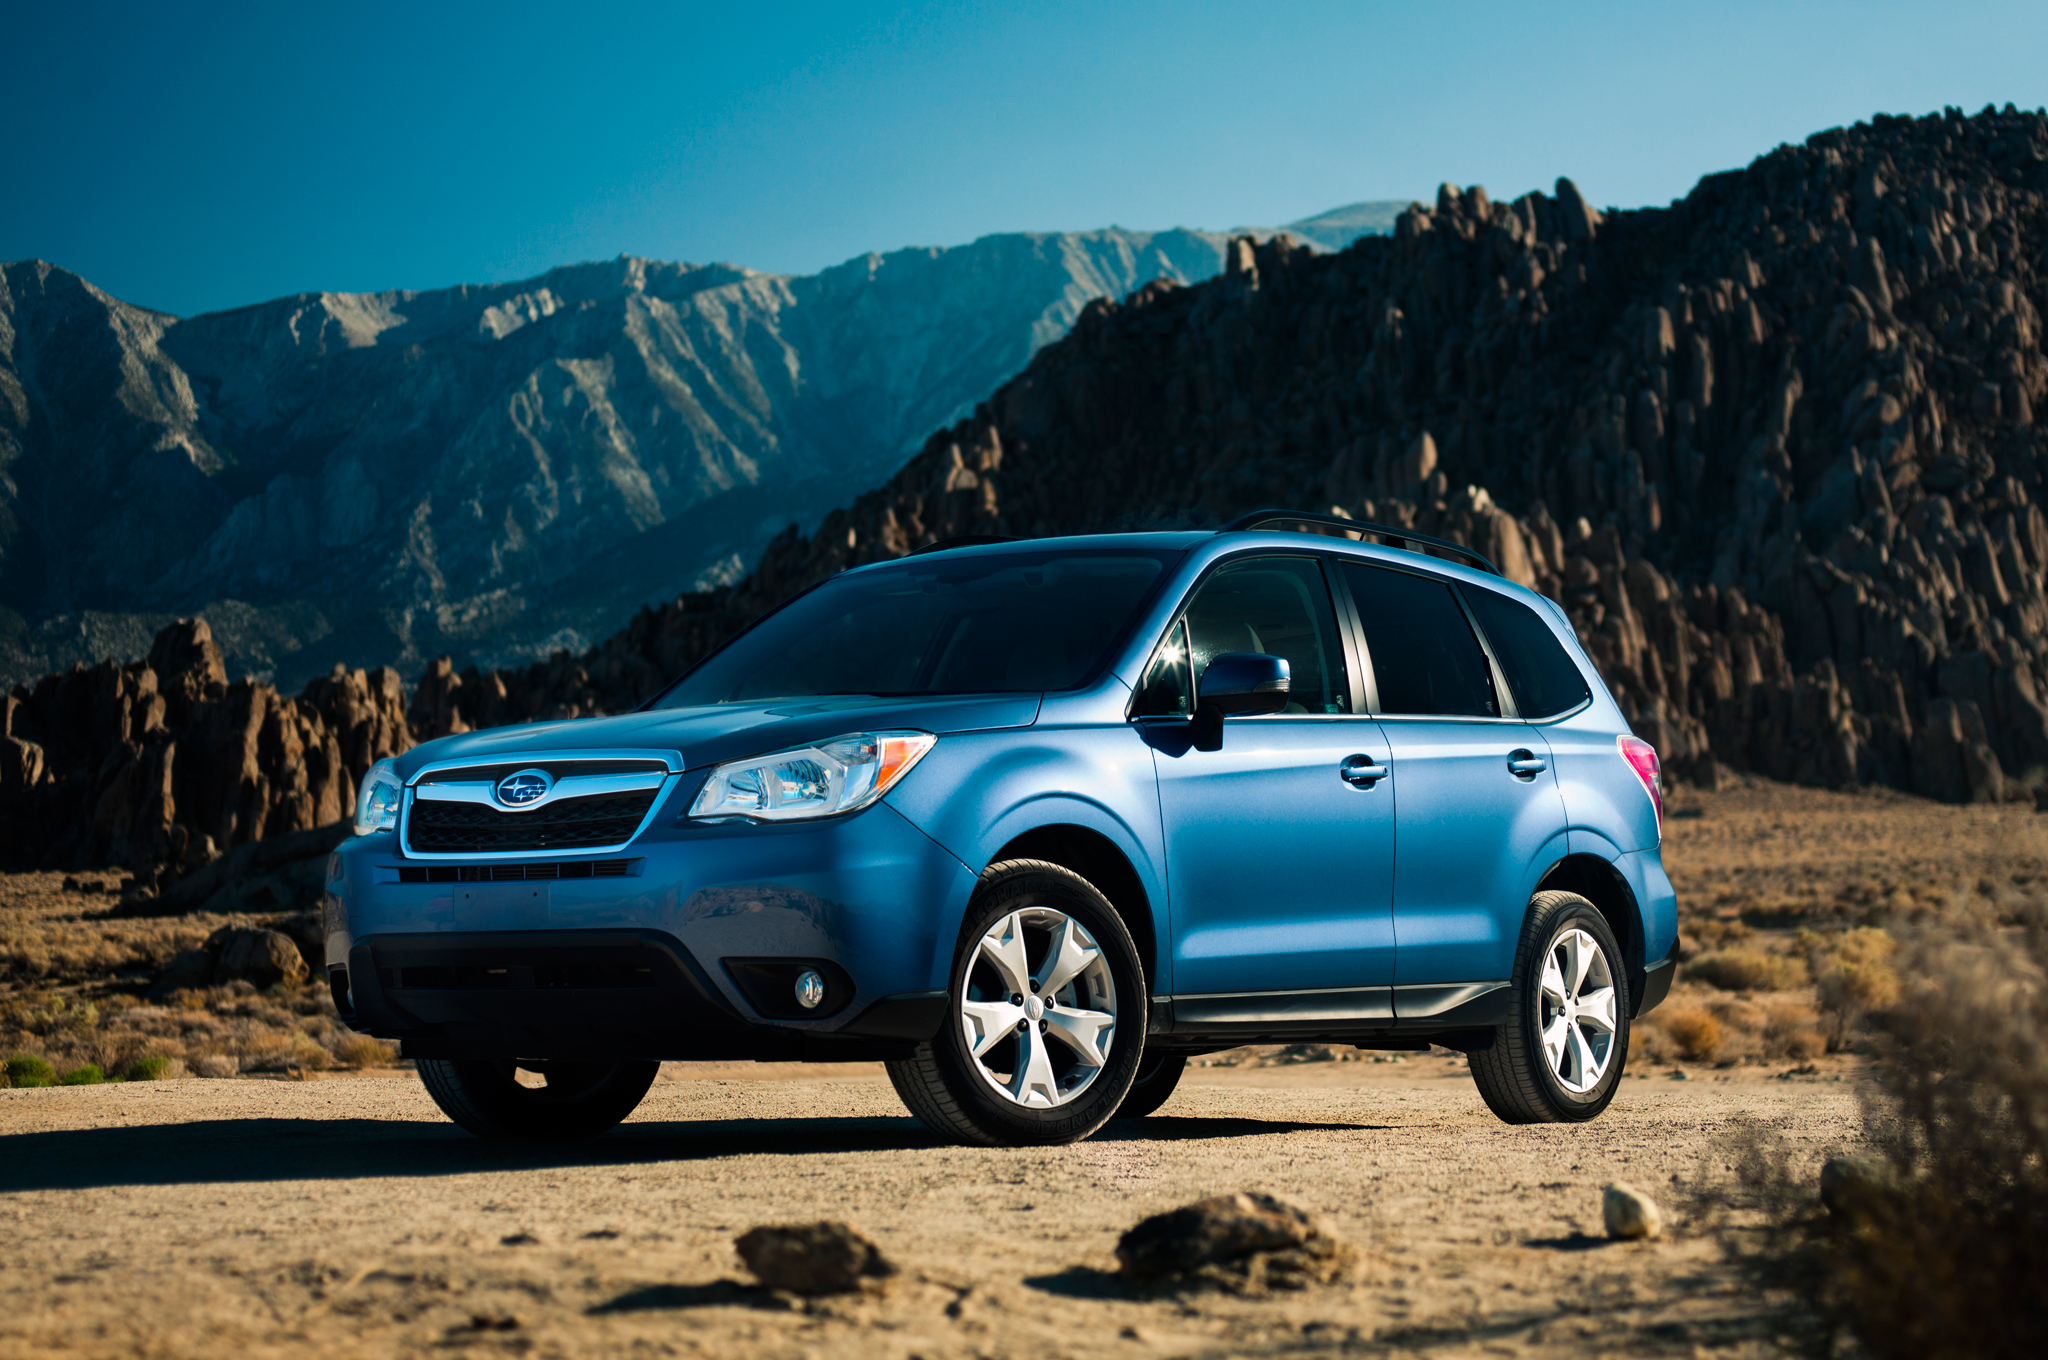 「2014-2016 Model Year (MY) Forester」の画像検索結果